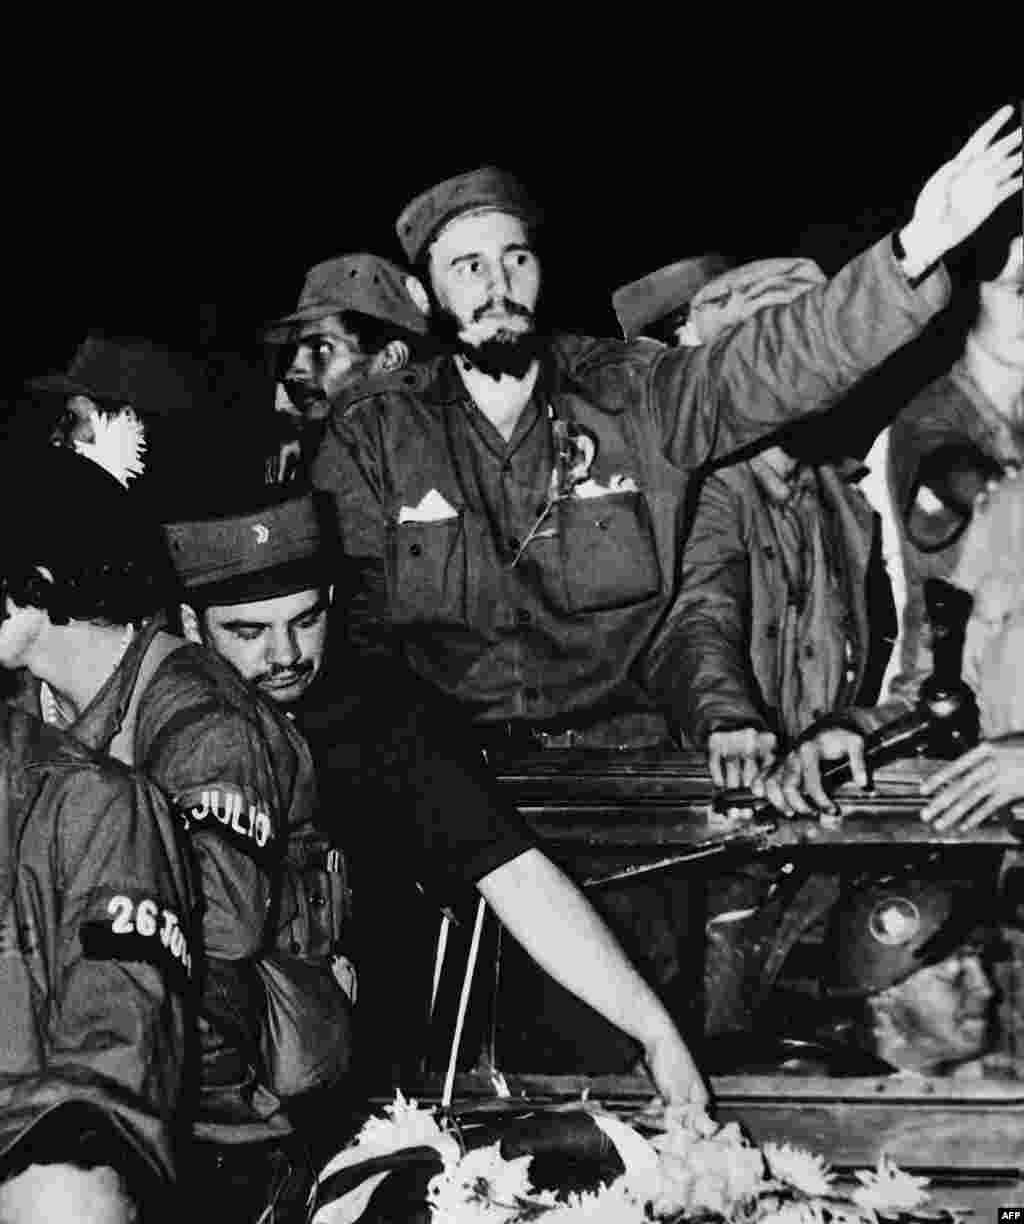 Surrounded by members of his leftist guerrilla movement, Castro (center) waves to crowds in Cienfuegos shortly after ousting Cuban dictator Fulgencio Batista in 1959.